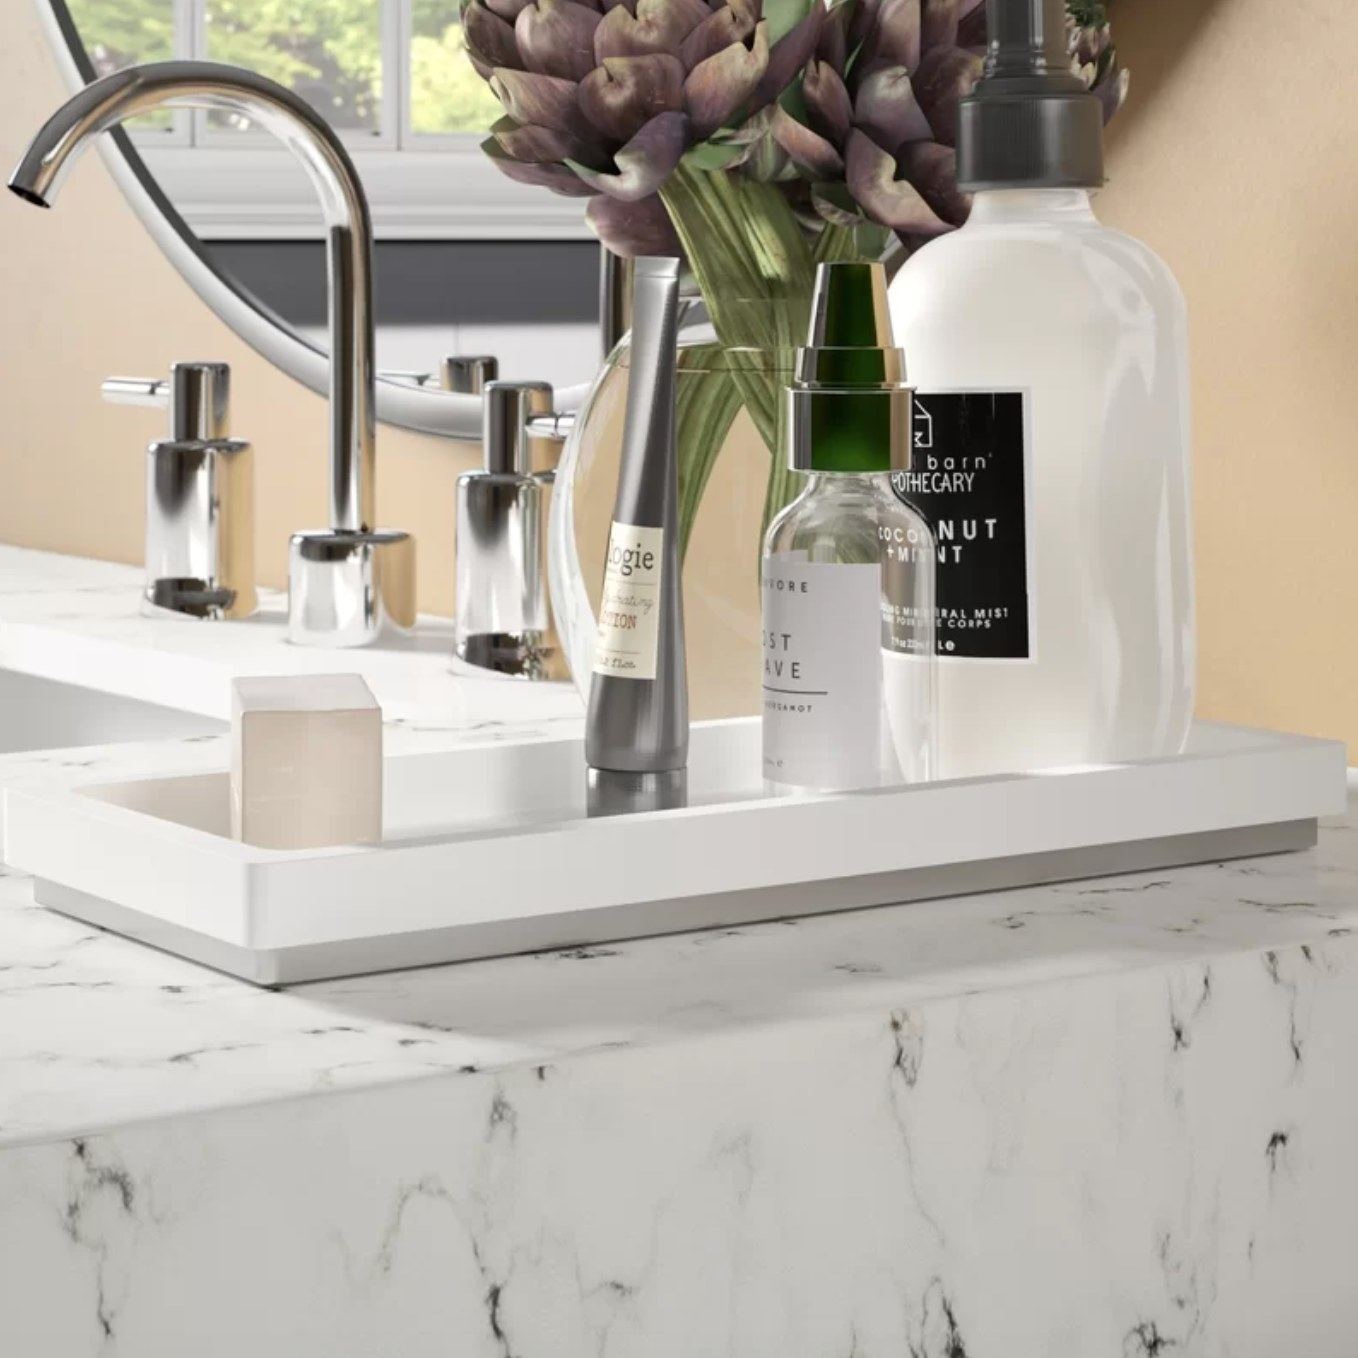 The bathroom accessories tray holding different bath and hygiene products